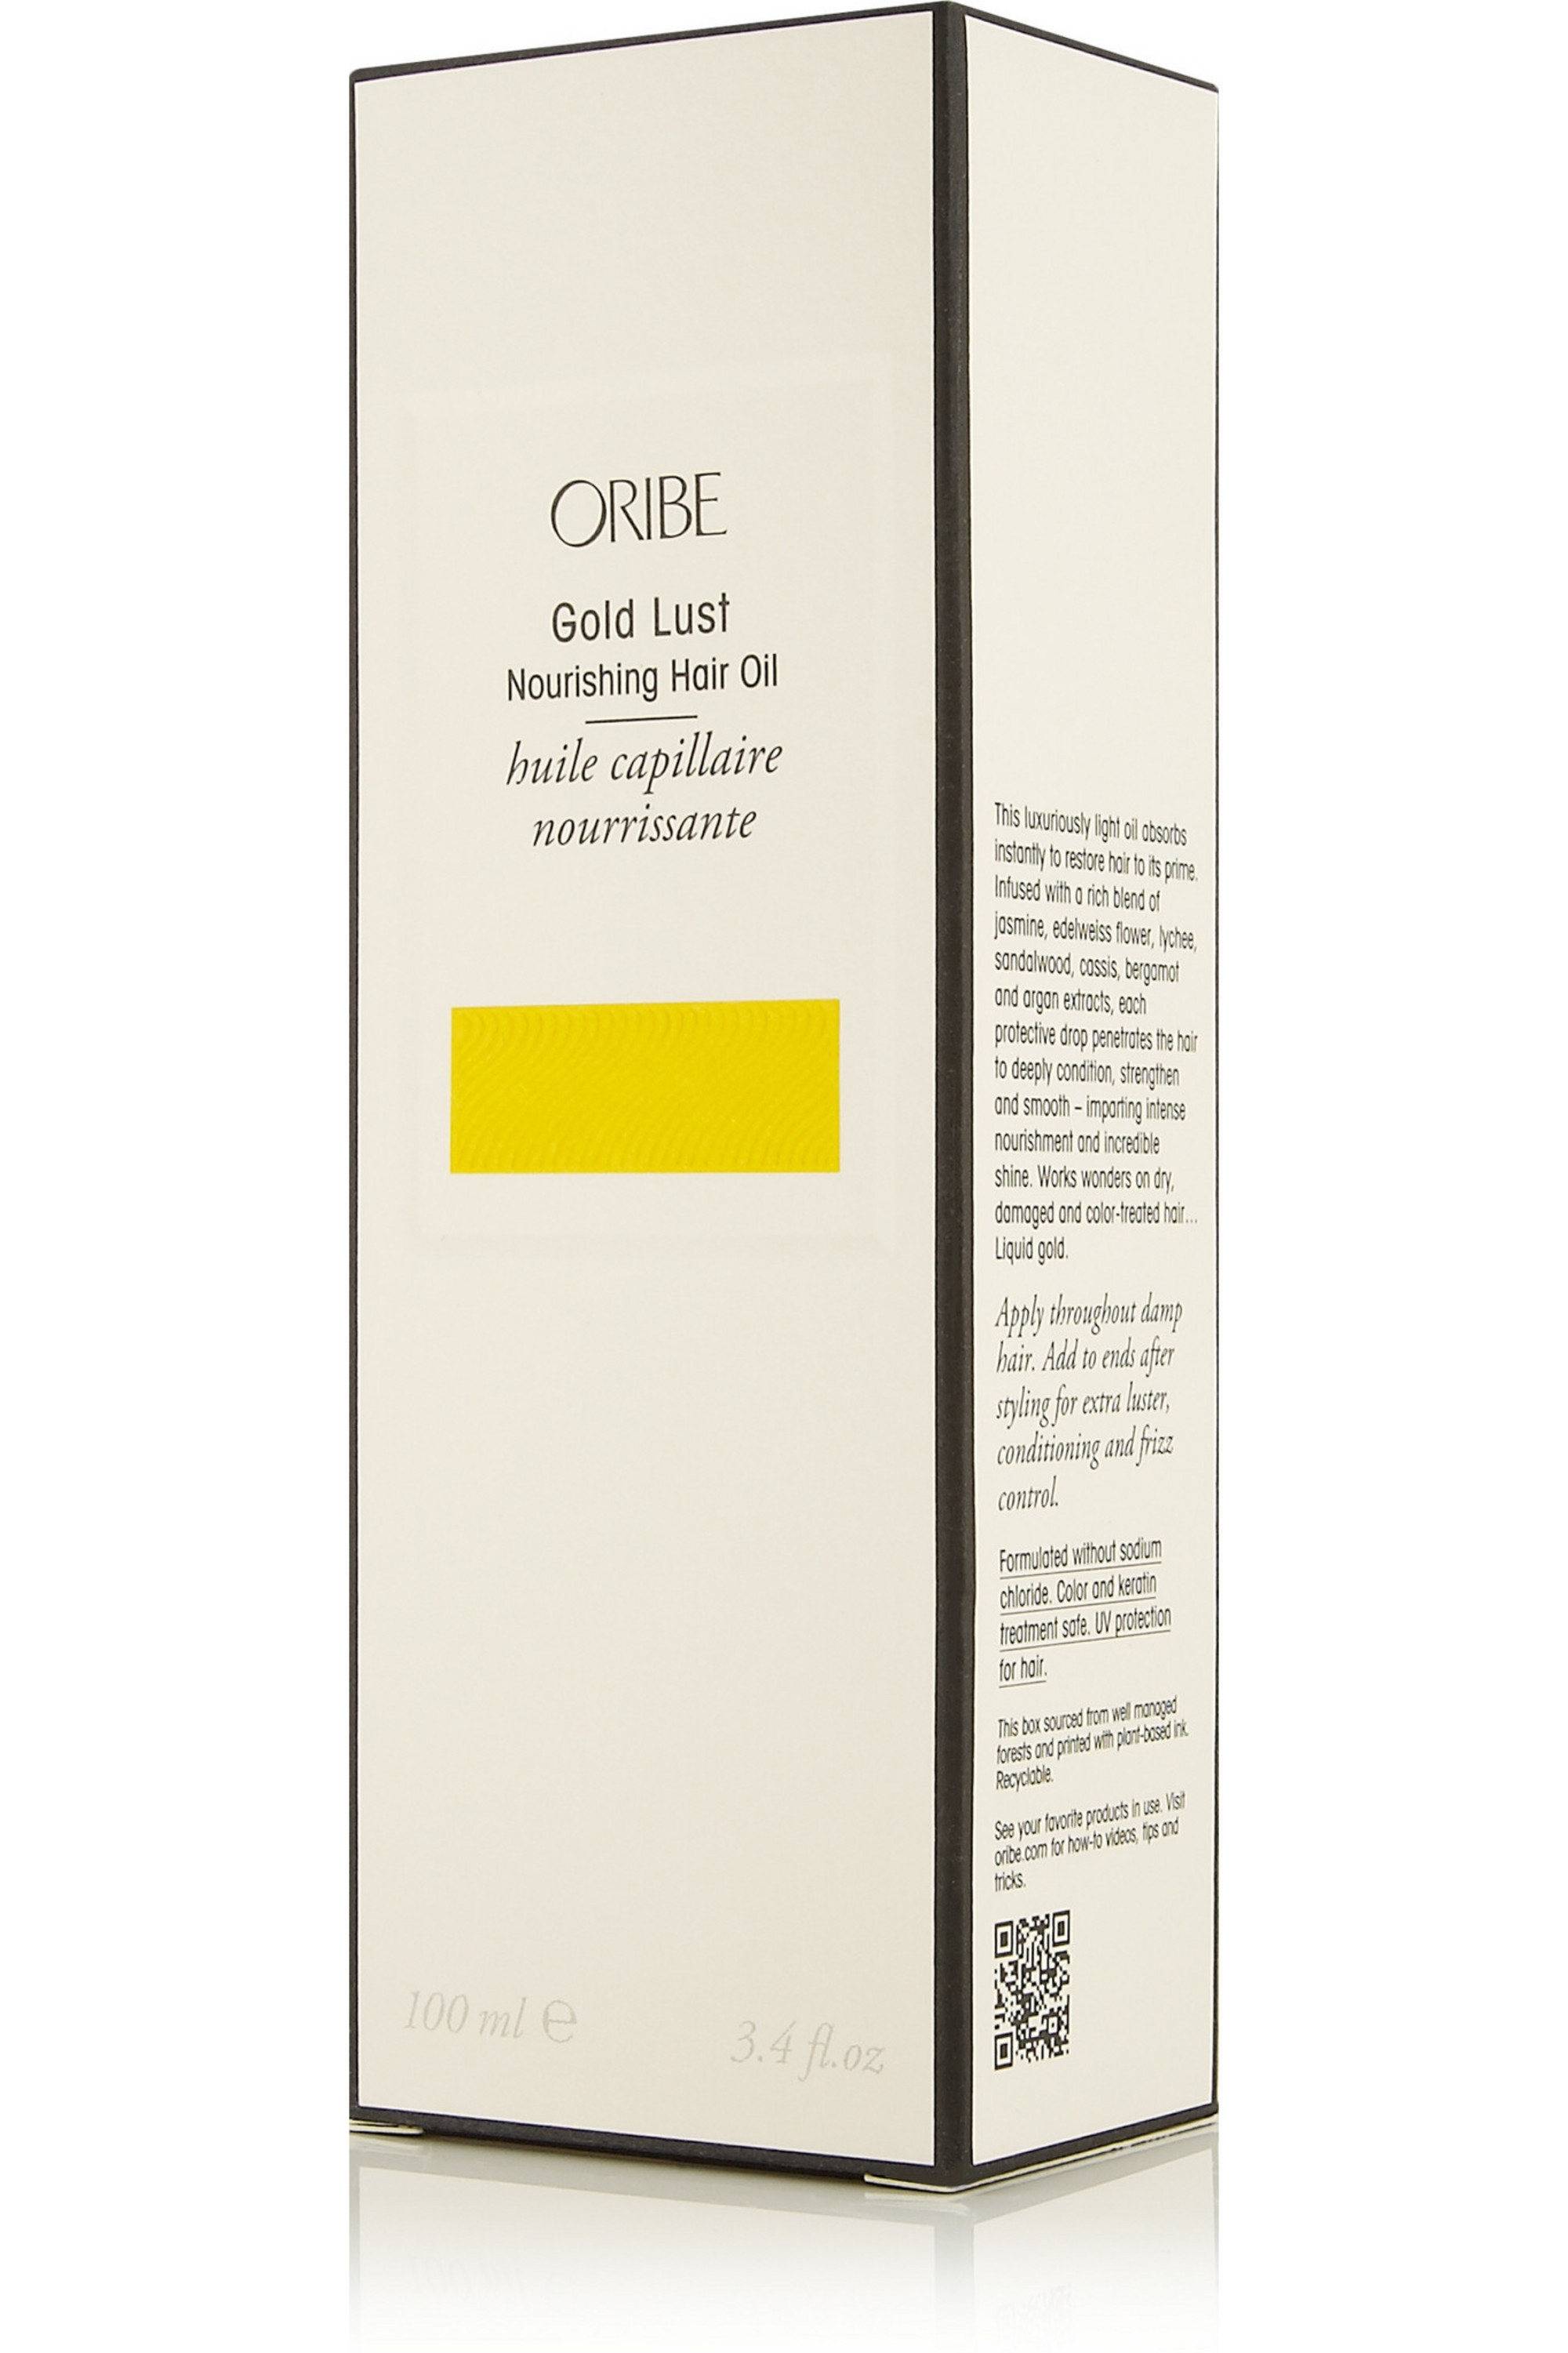 Oribe Gold Lust Nourishing Hair Oil, 100ml